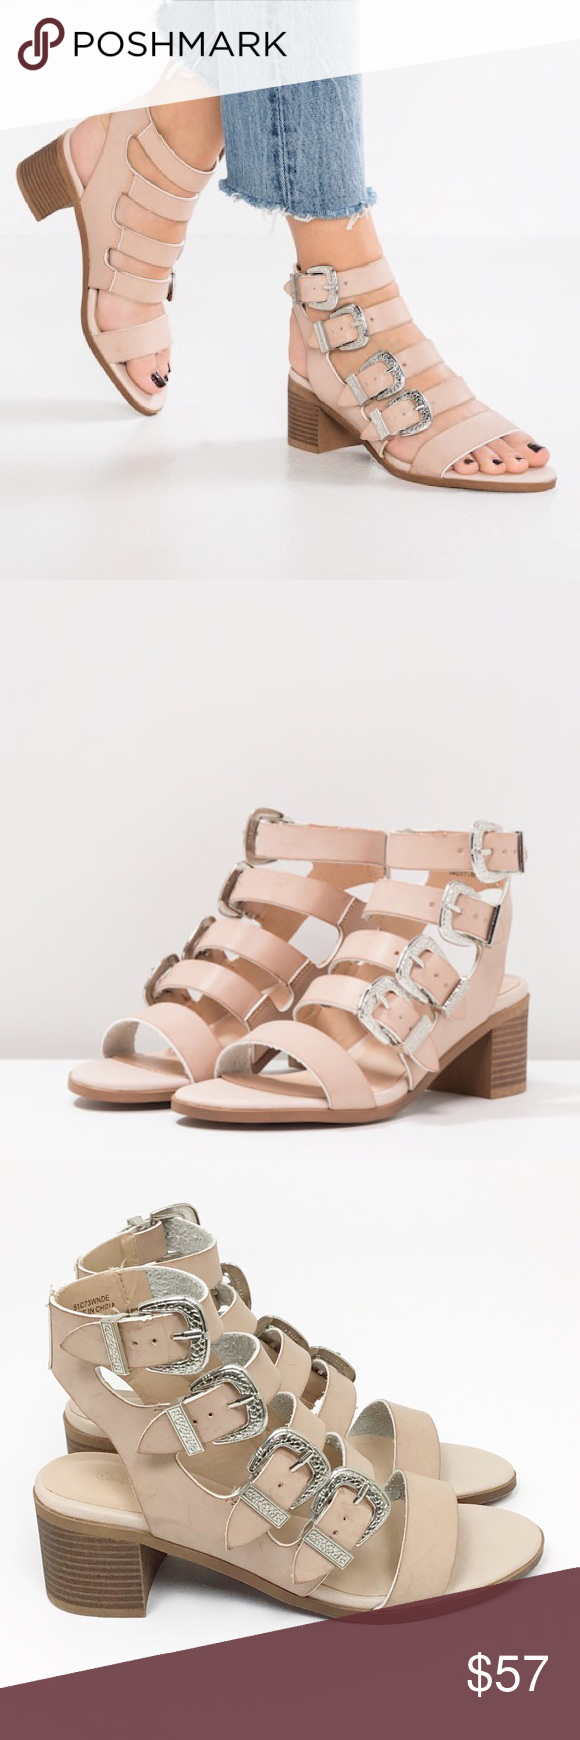 """68319e716eae Miss Selfridge Cadee Western Buckle Sandal Heels NWOB Size 7.5 (Can fit a  size 8) Color  Nude All Buckles can be Adjusted Silver Buckles Block Heel  (2.5"""") ..."""